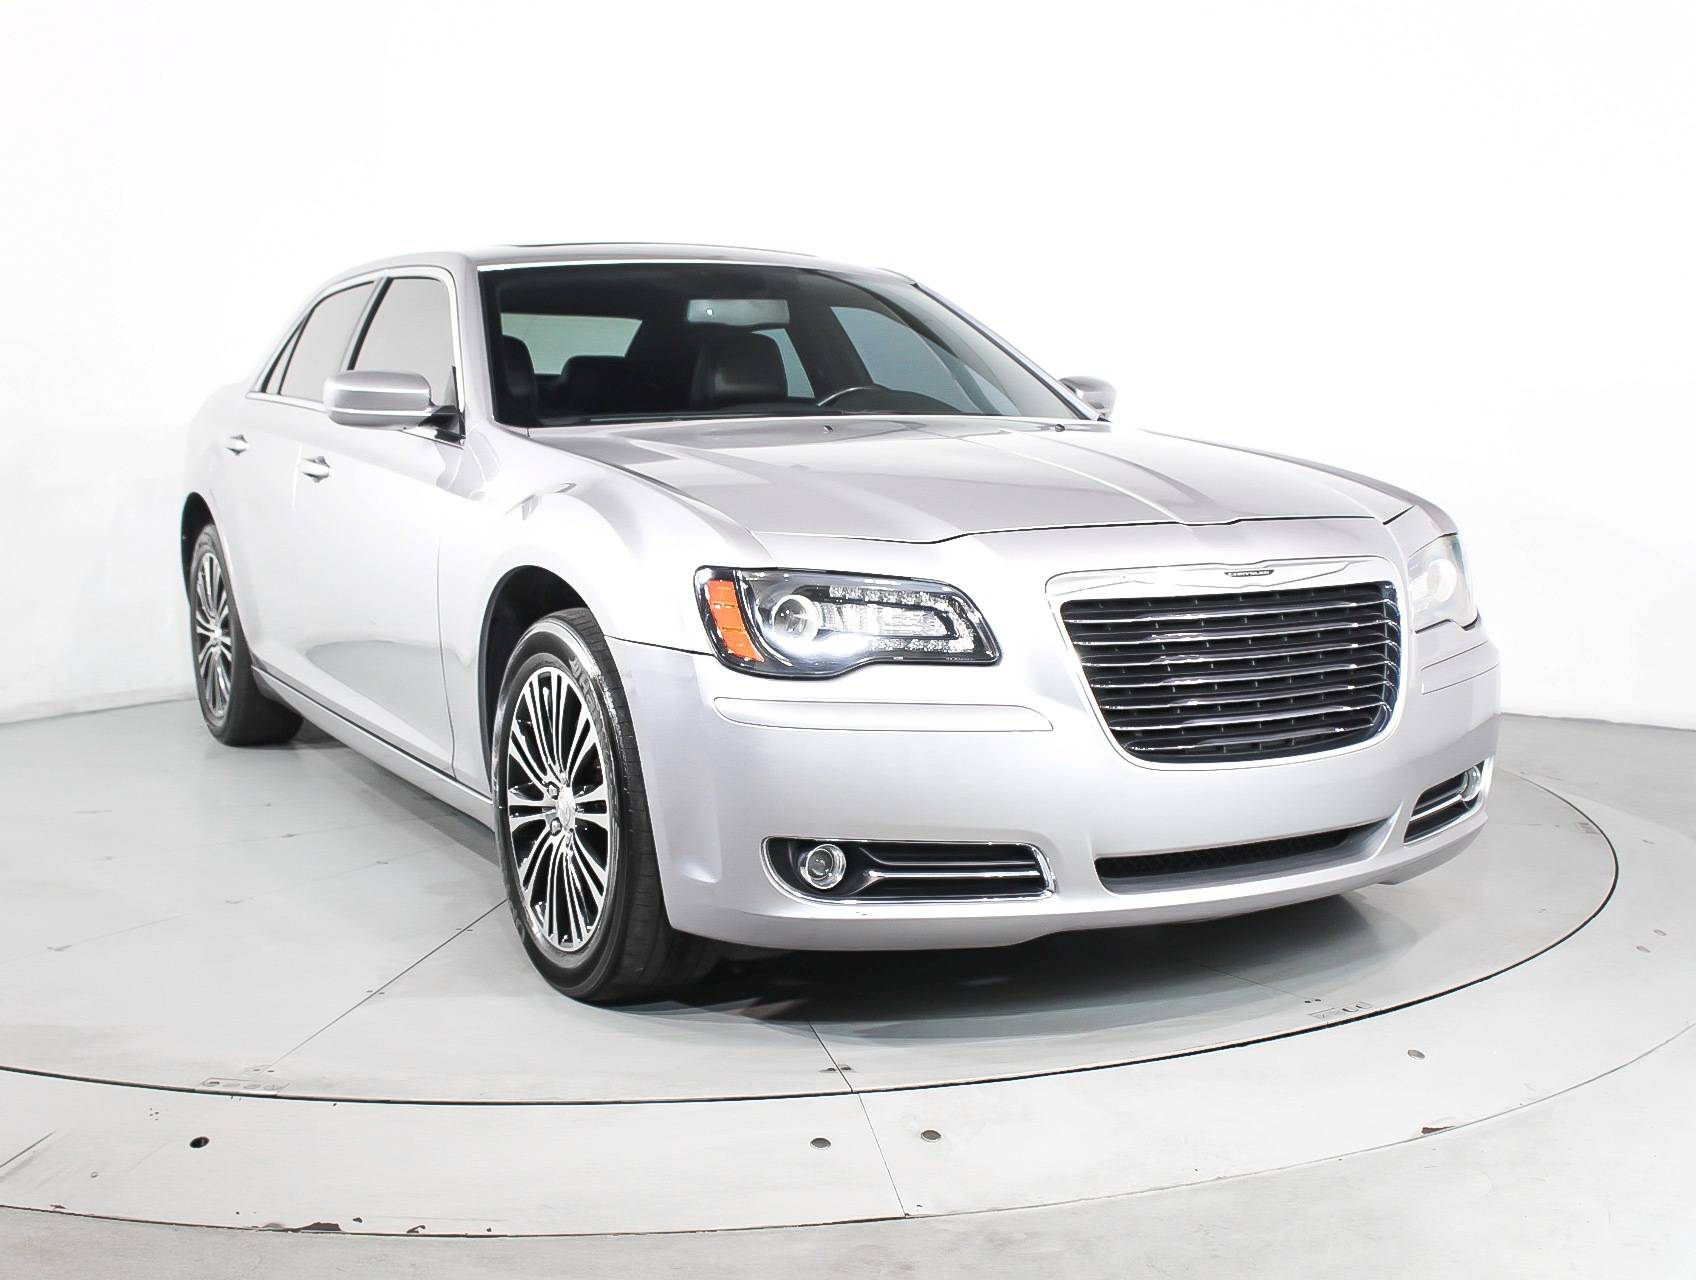 discontinued could be the vapor edition report front satin end srt chrysler news